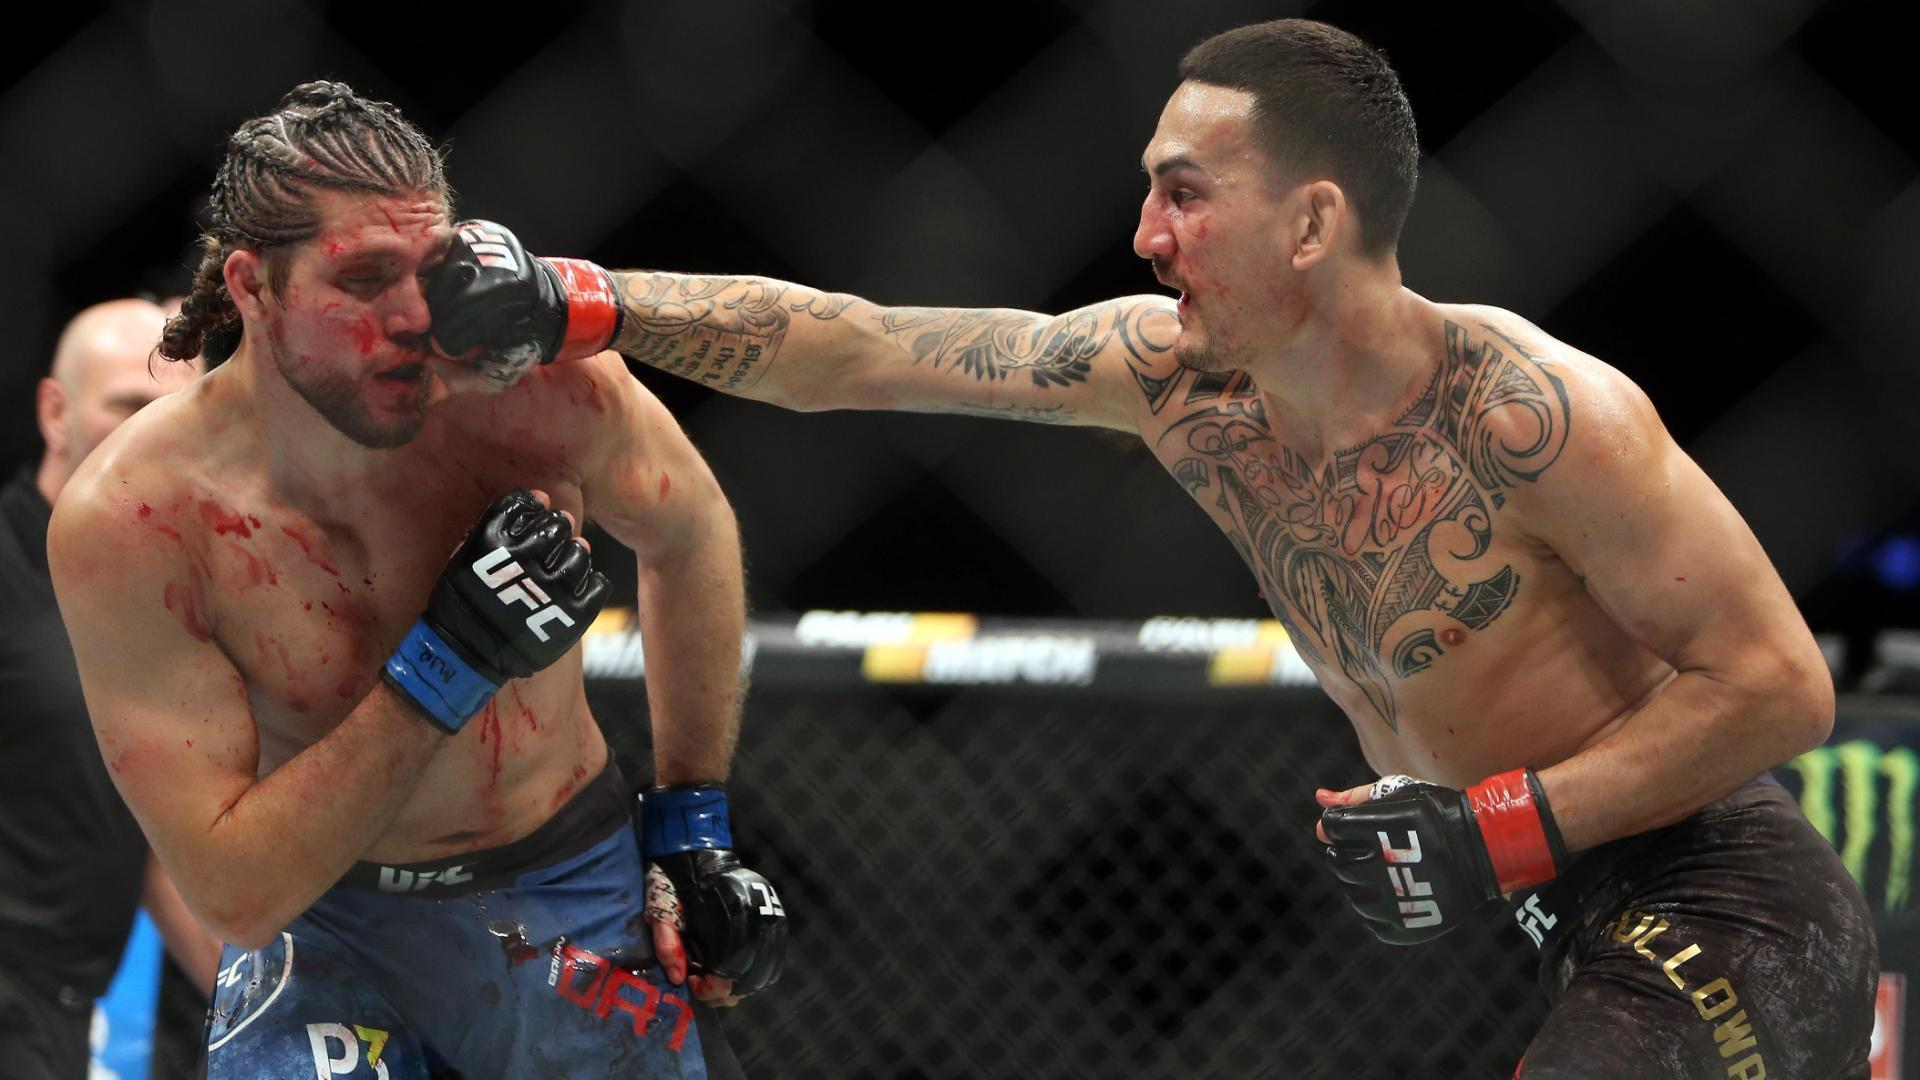 Max Holloway retains UFC title, 'intrigued' by Khabib superfight